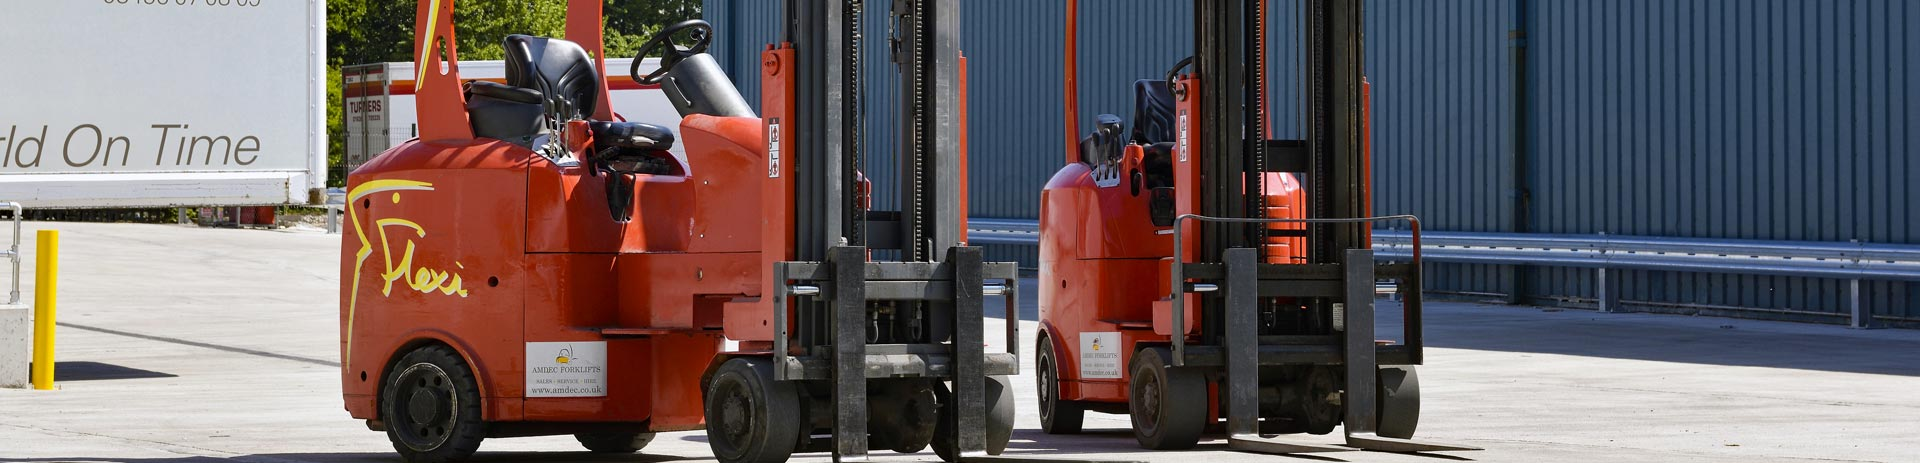 Flexi and Bendi Forklift Truck Specialists Manchester